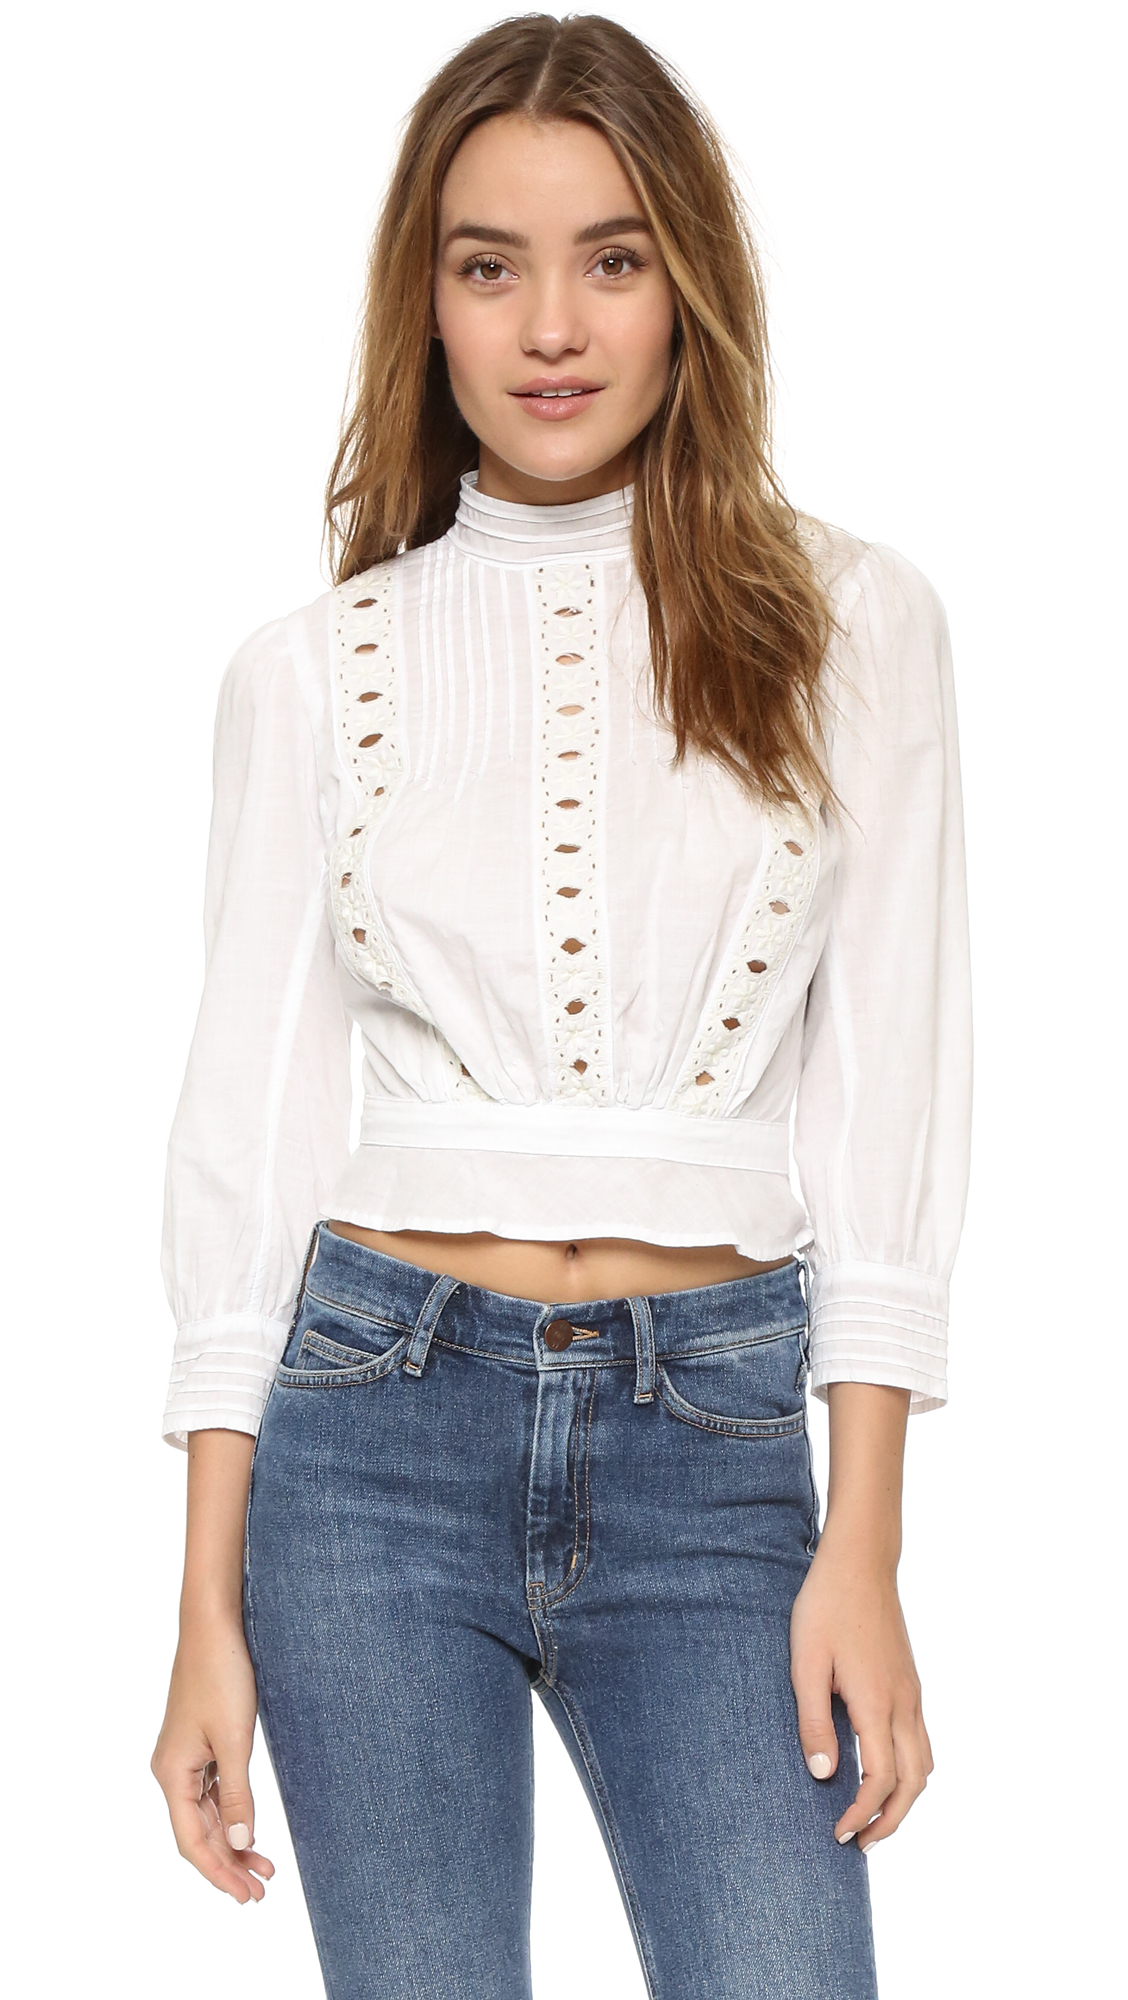 Citizens Of Humanity Josie Blouse - White at Shopbop